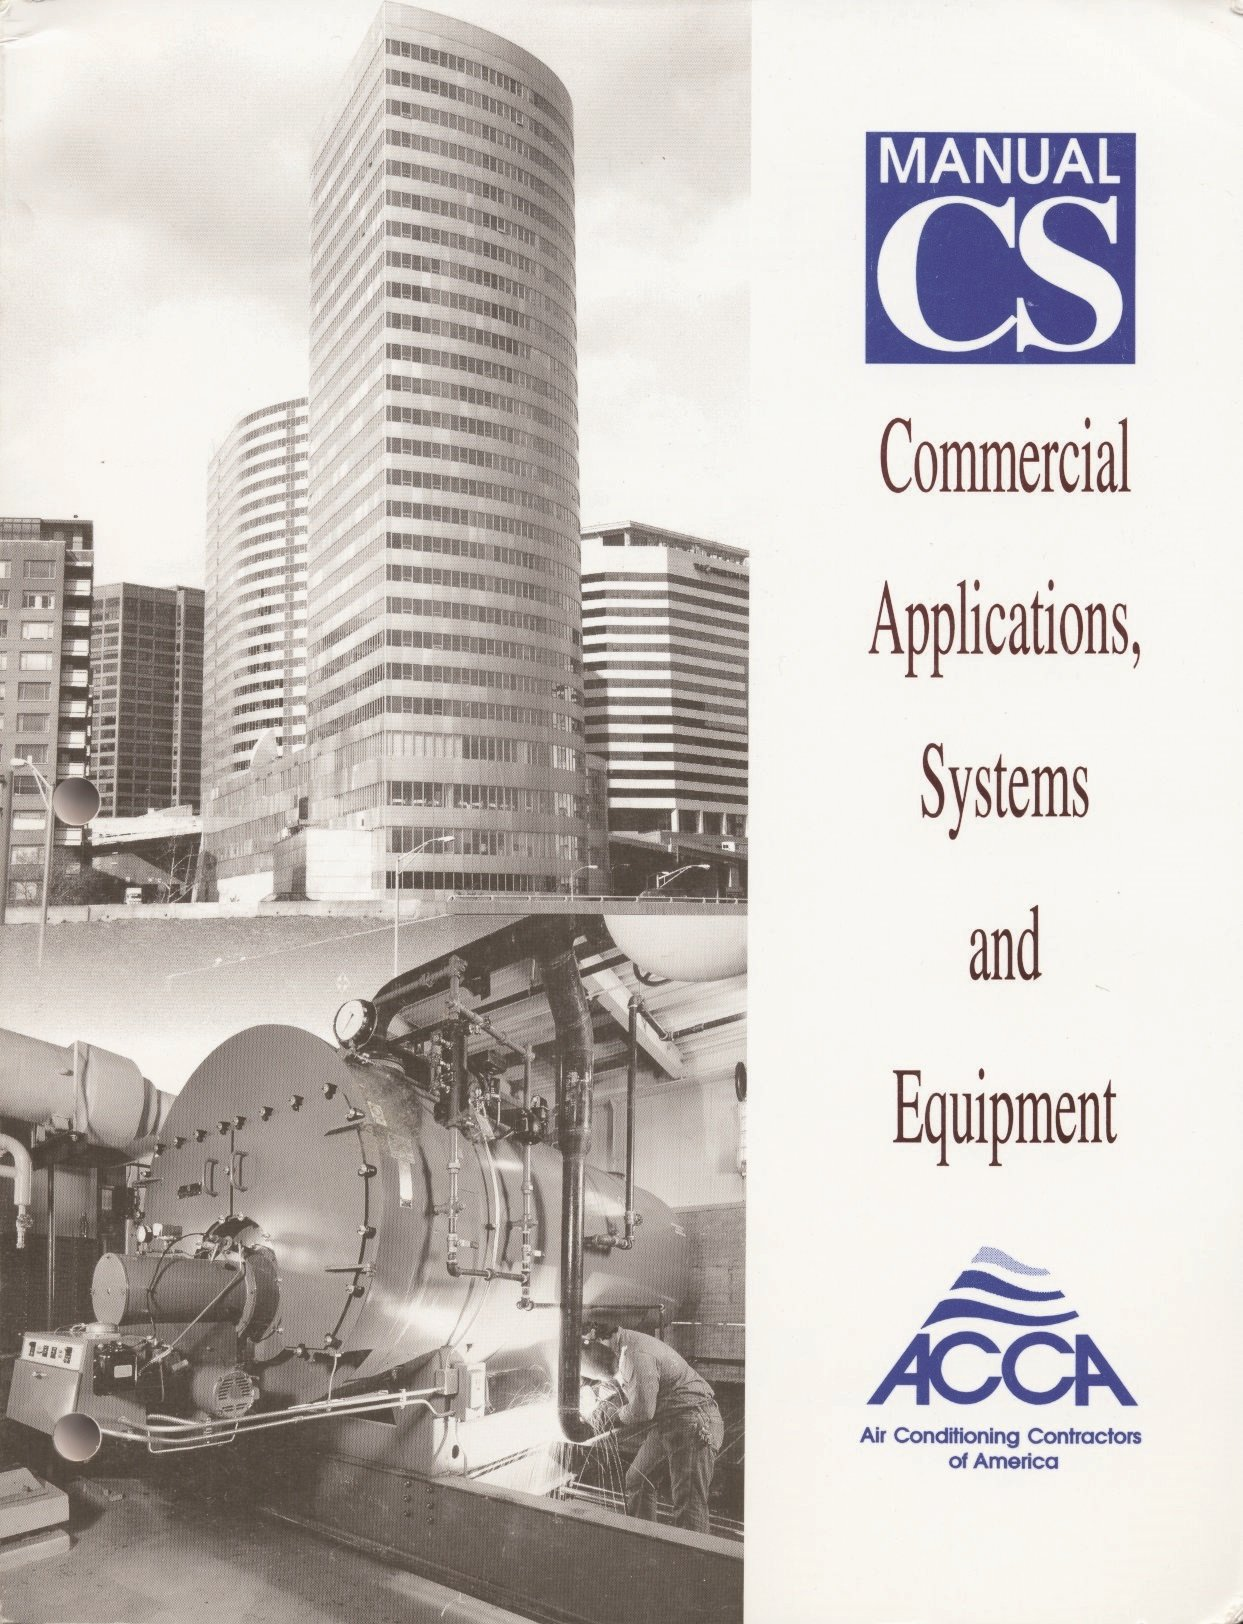 Commercial Applications, Systems and Equipment, Manual CS®